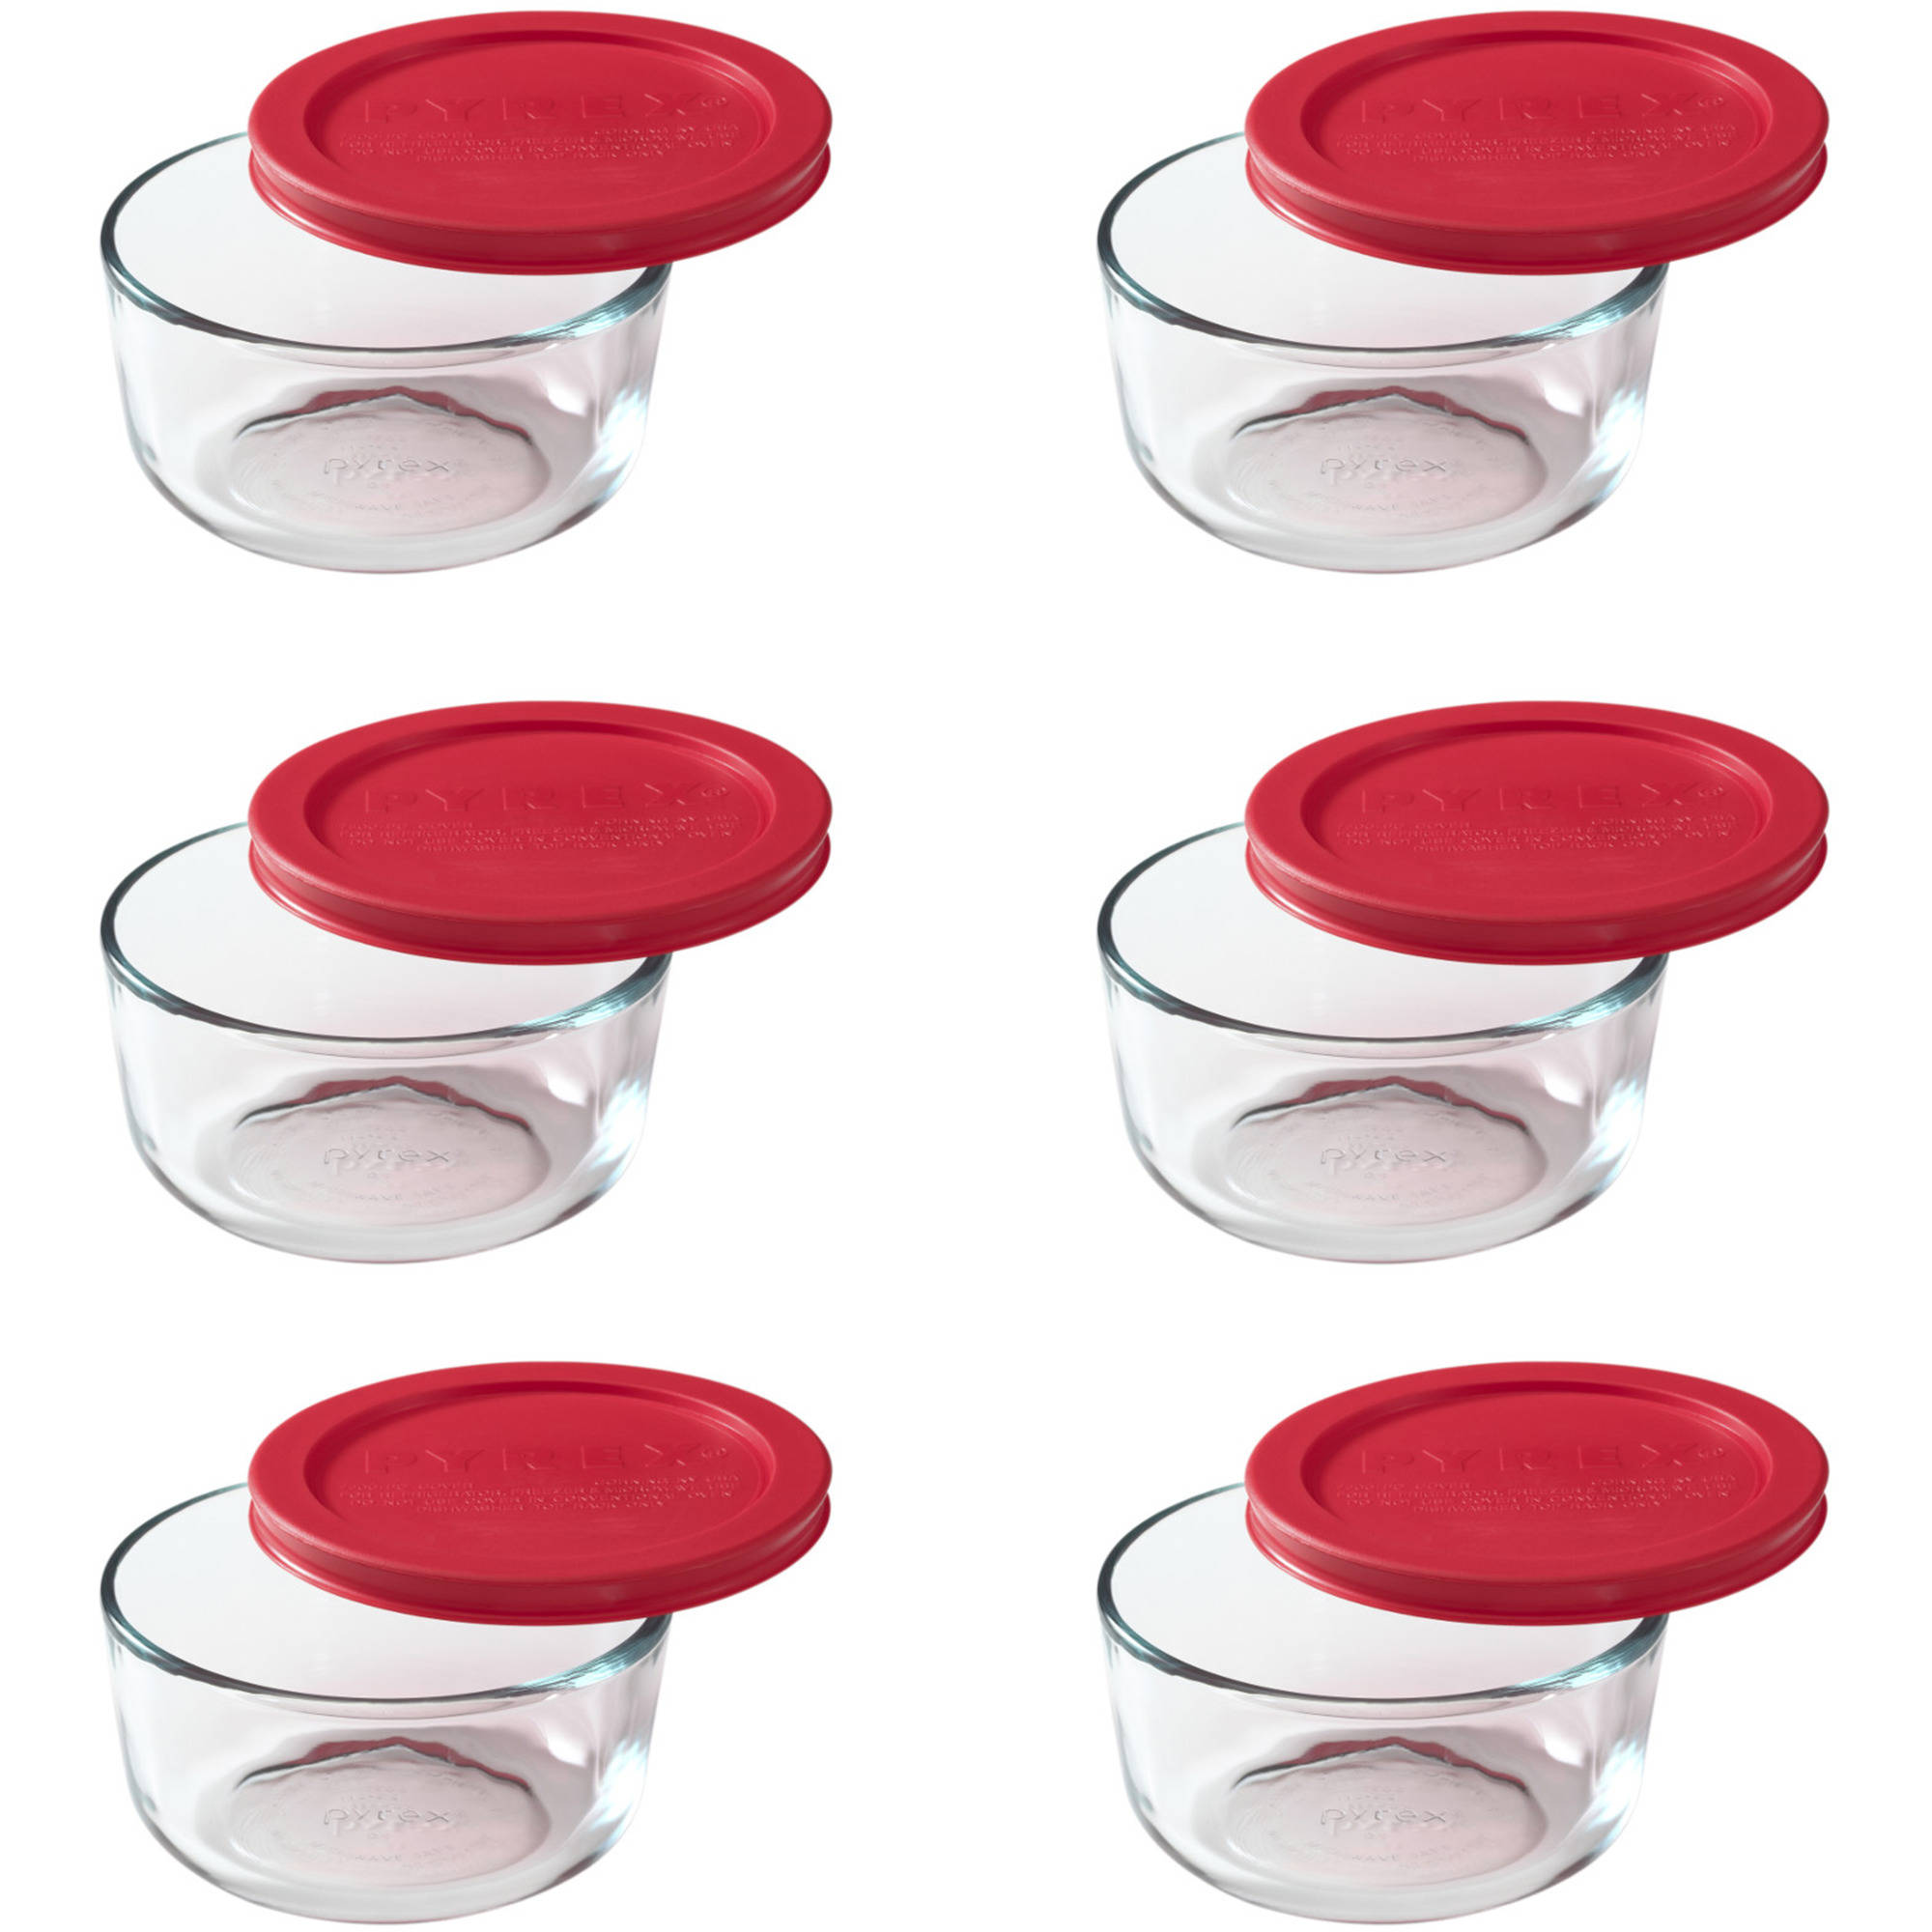 Pyrex Storage Plus 2-Cup Round with Red Plastic Cover, Set of 6